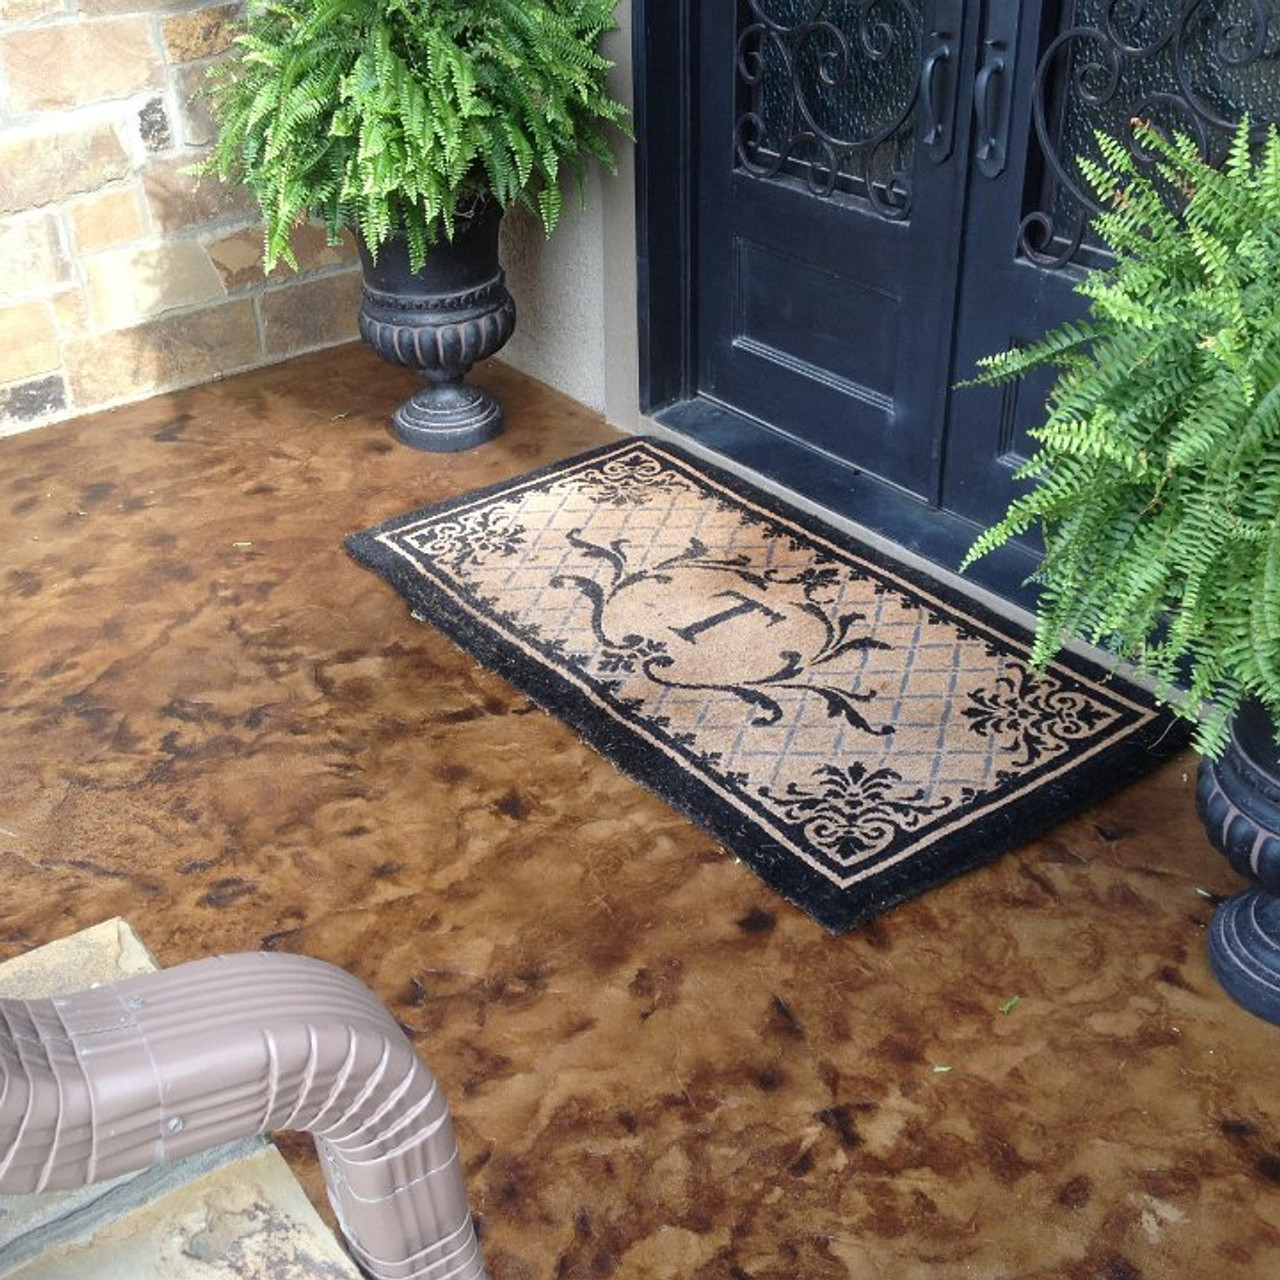 SealGreen Driveway and Garage Cleaner Concentrate is design to clean decorative and stamped concrete